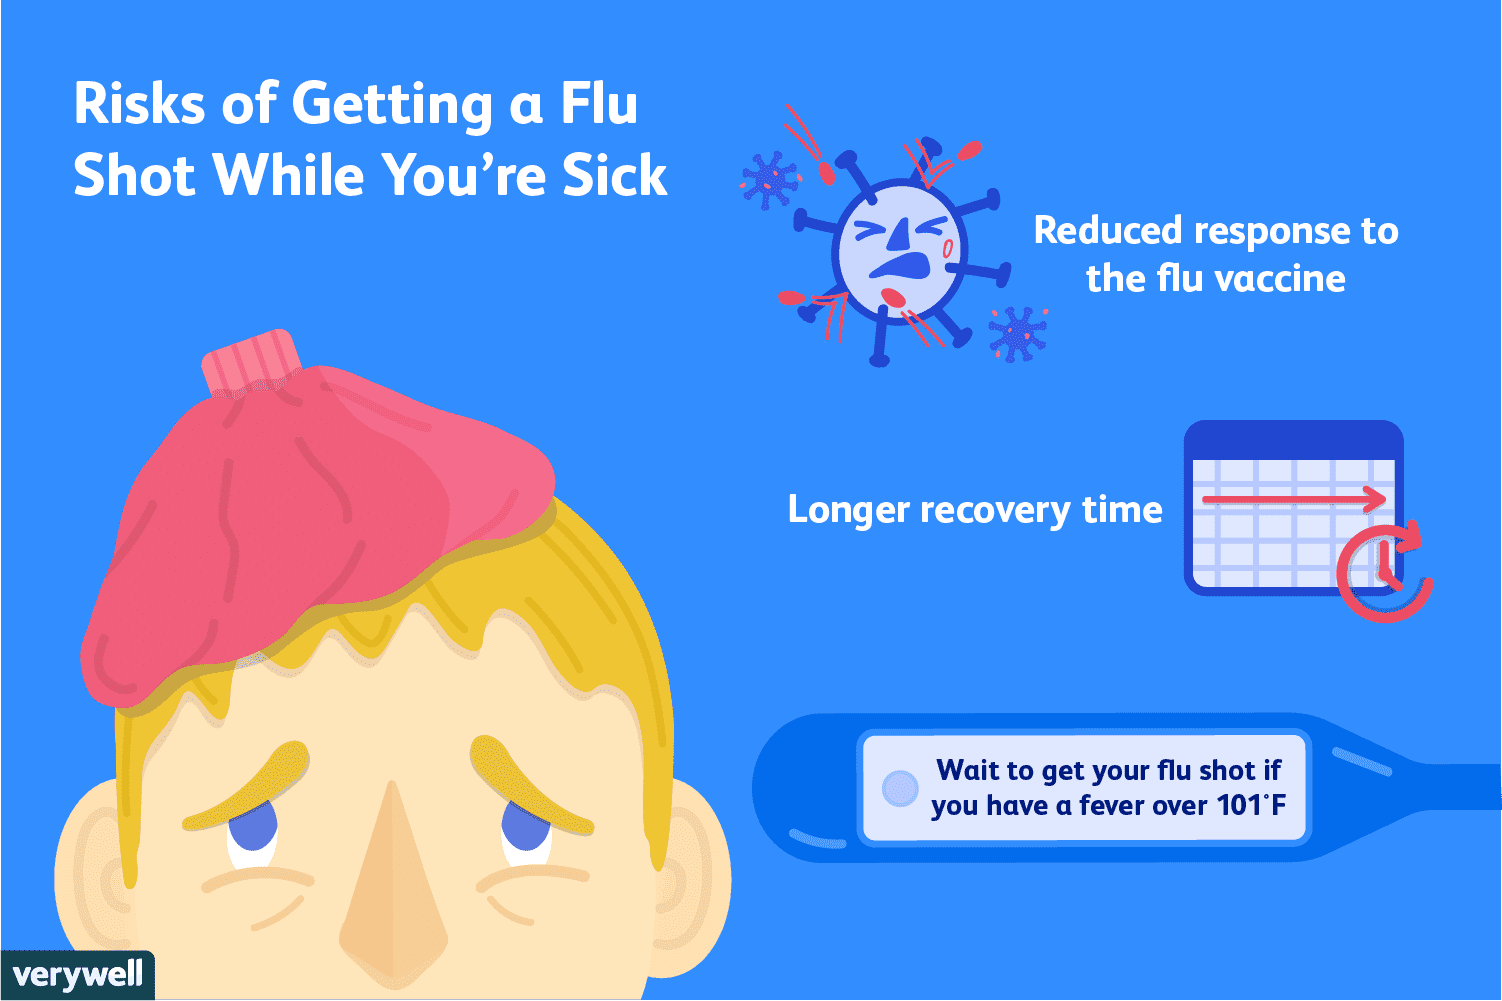 Risks of Getting a Flu Shot While You're Sick